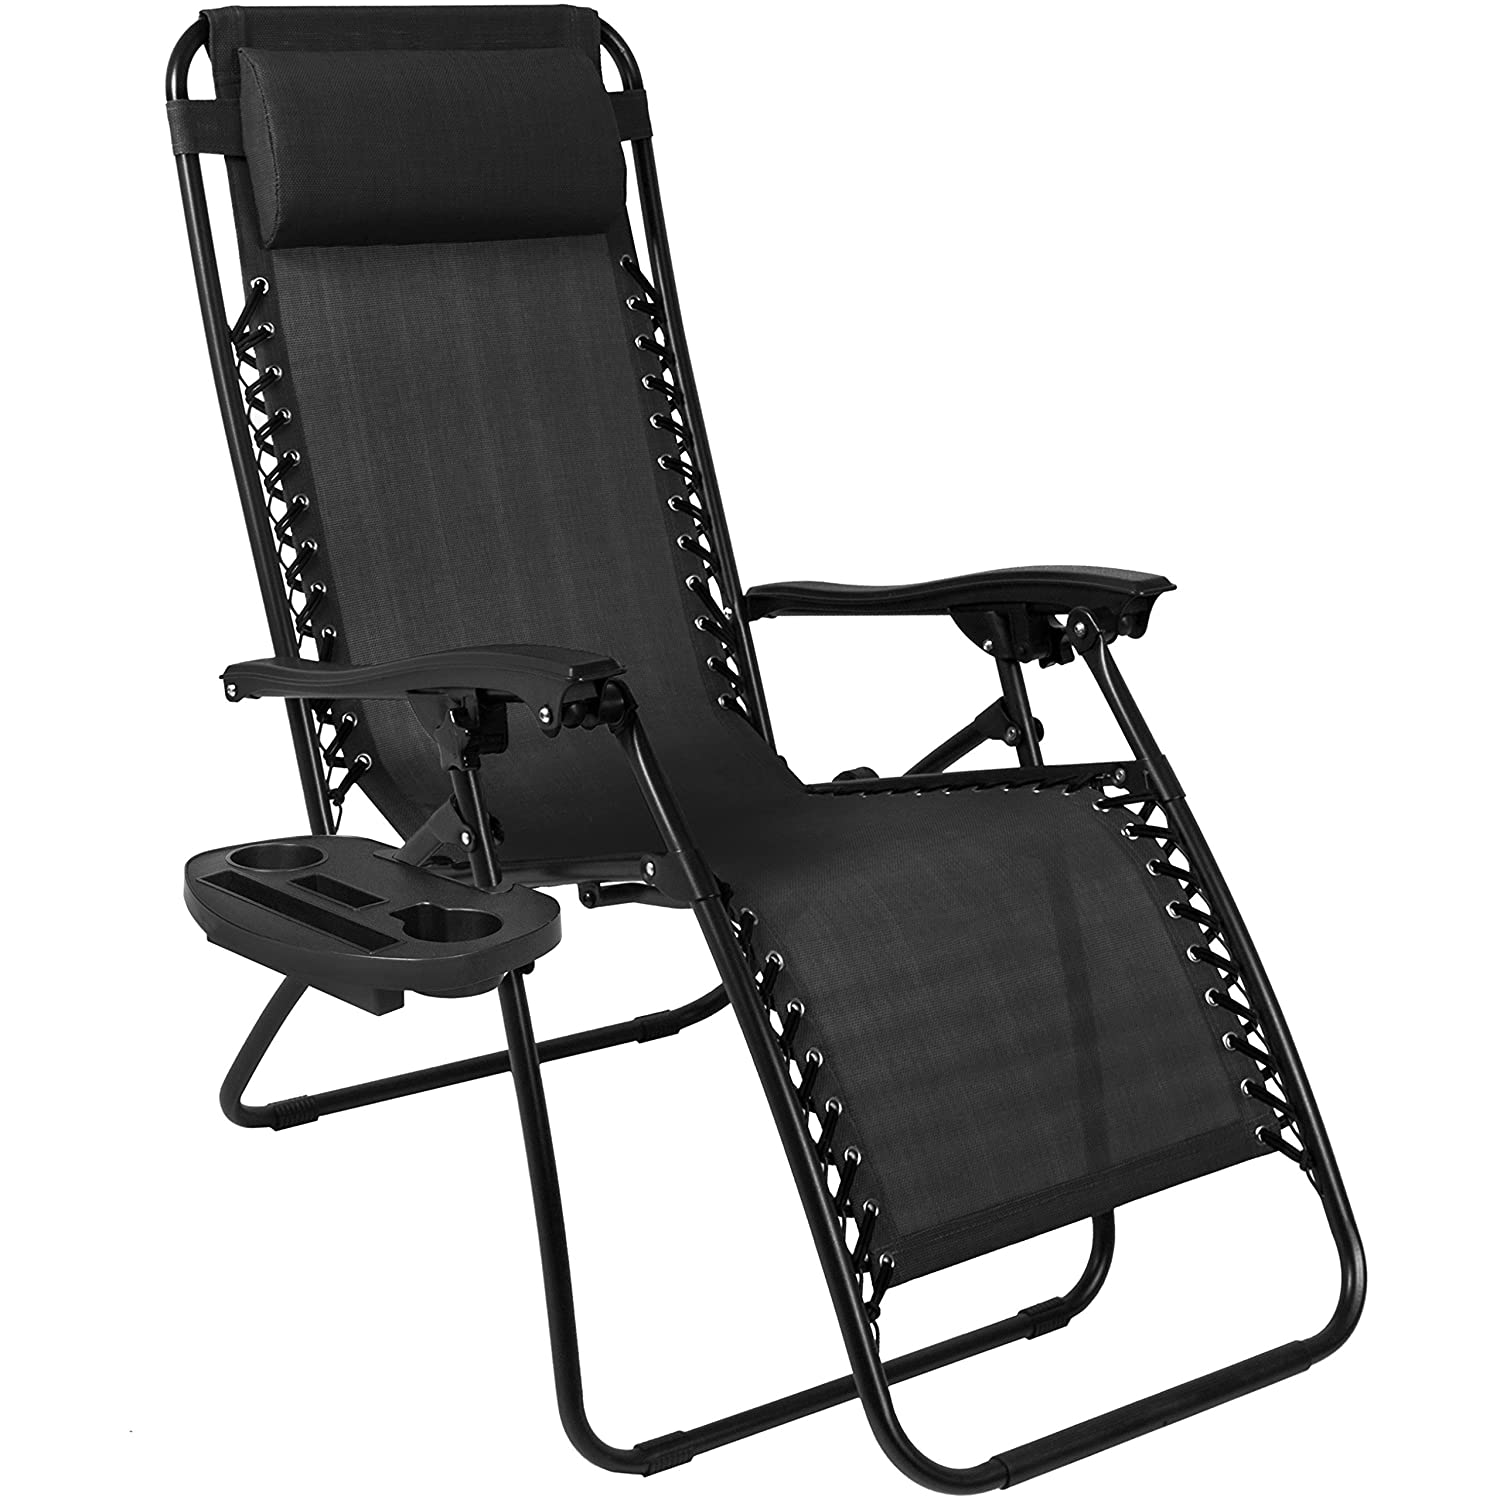 Amazon.com  Best Choice Products Zero Gravity Chairs Case Of (2) Black Lounge Patio Chairs Outdoor Yard Beach New  Garden u0026 Outdoor  sc 1 st  Amazon.com & Amazon.com : Best Choice Products Zero Gravity Chairs Case Of (2 ... islam-shia.org